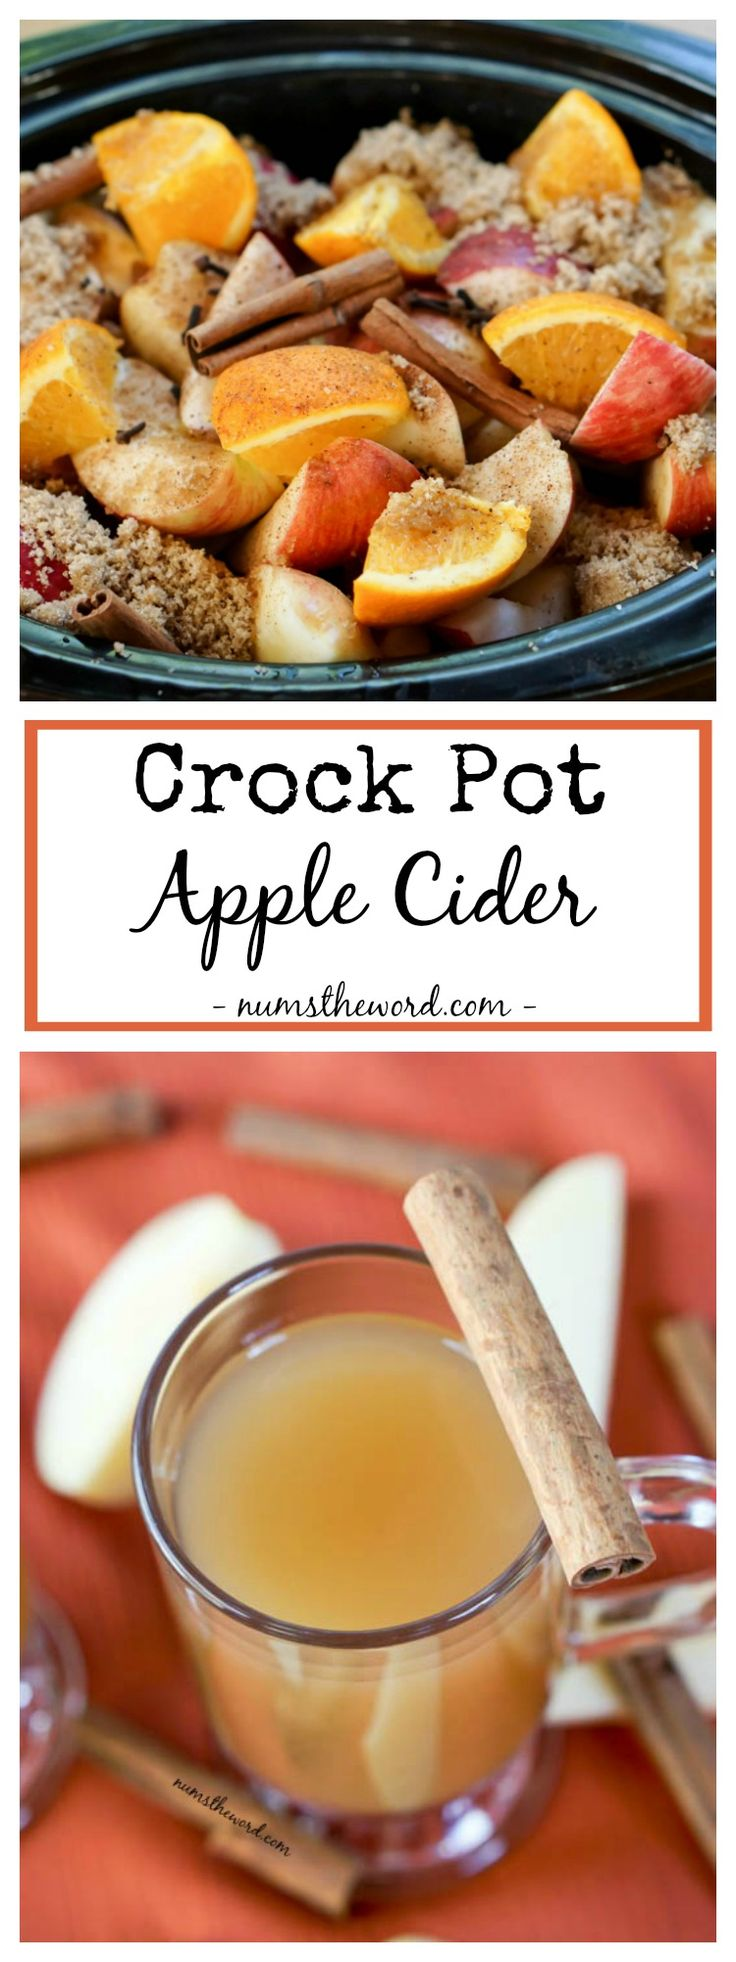 Crock Pot Apple Cider not only makes your home smell like Autumn, it tastes amazing too! Fresh Homemade Apple Cider is the best on a chilly day or night!                                                                                                                                                                                 More